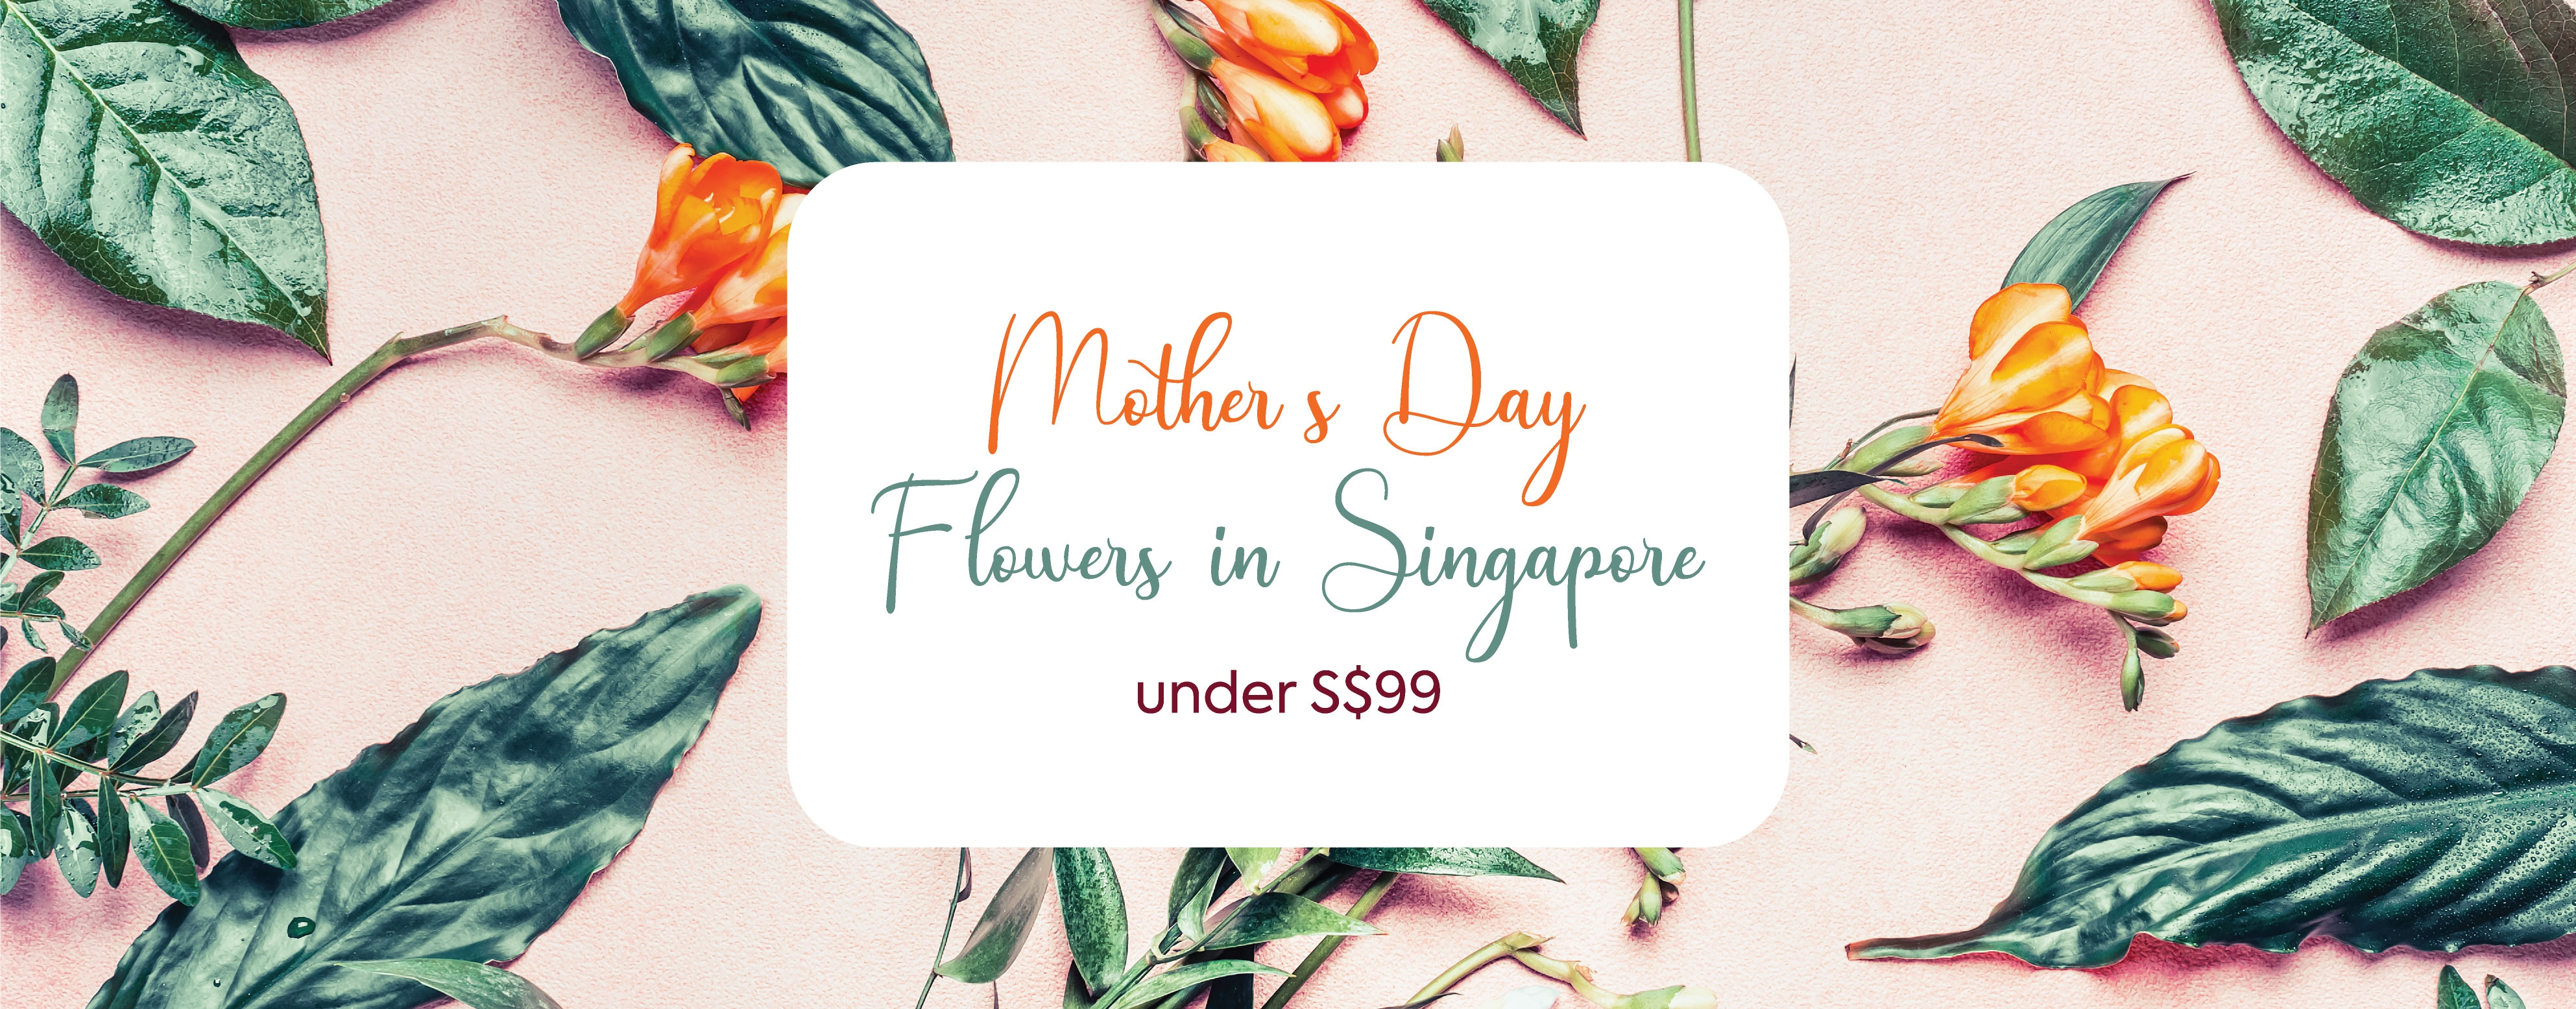 HMother's Day Flowers in Singapore under S$99